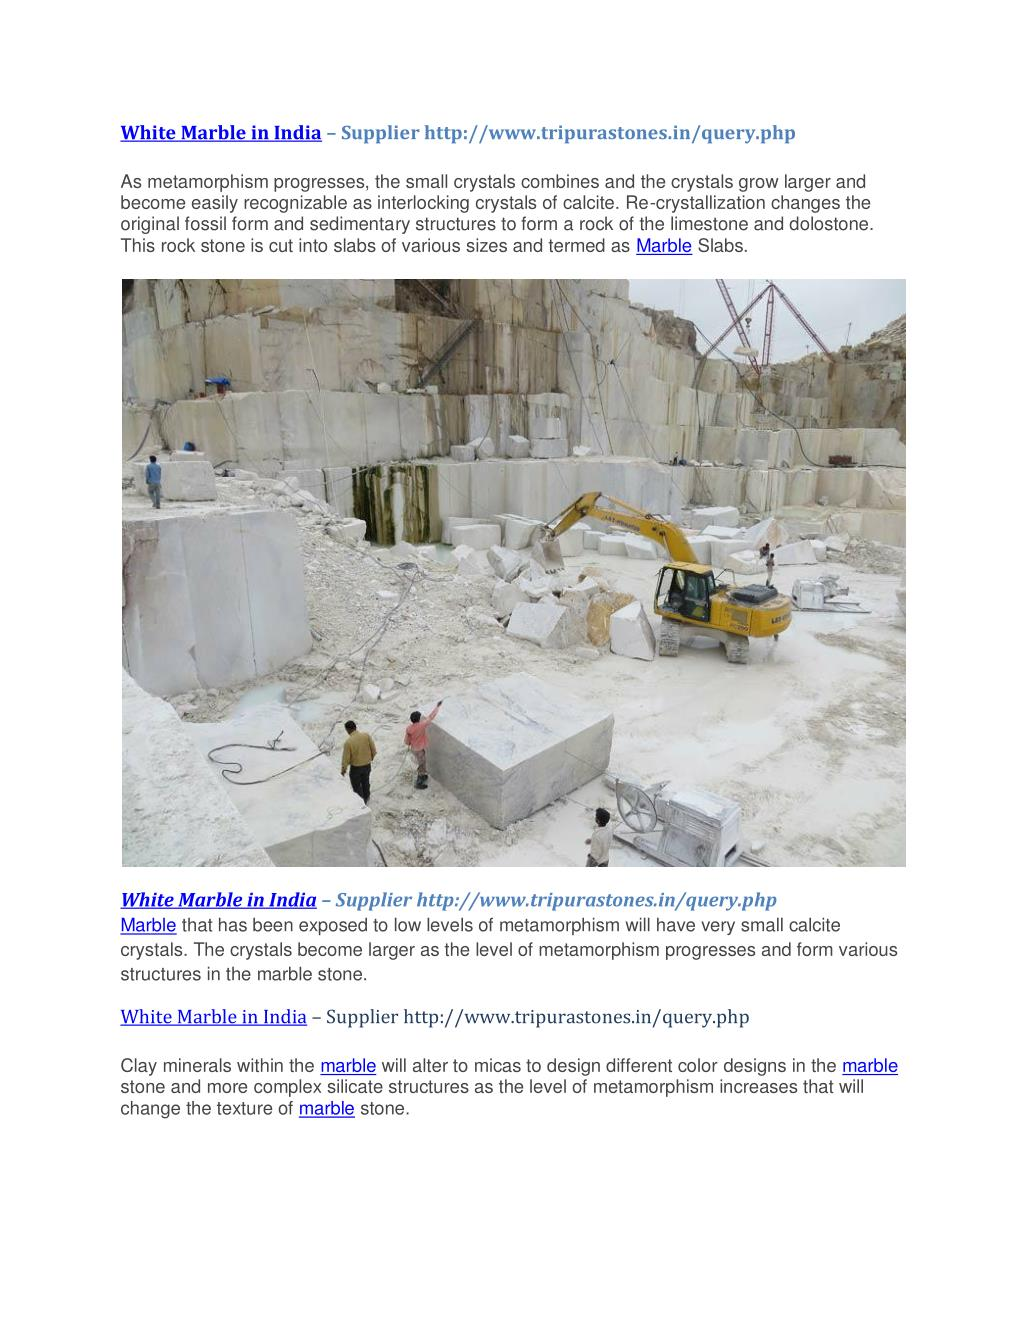 PPT - White Marble in India-Supplier Tripura Stones